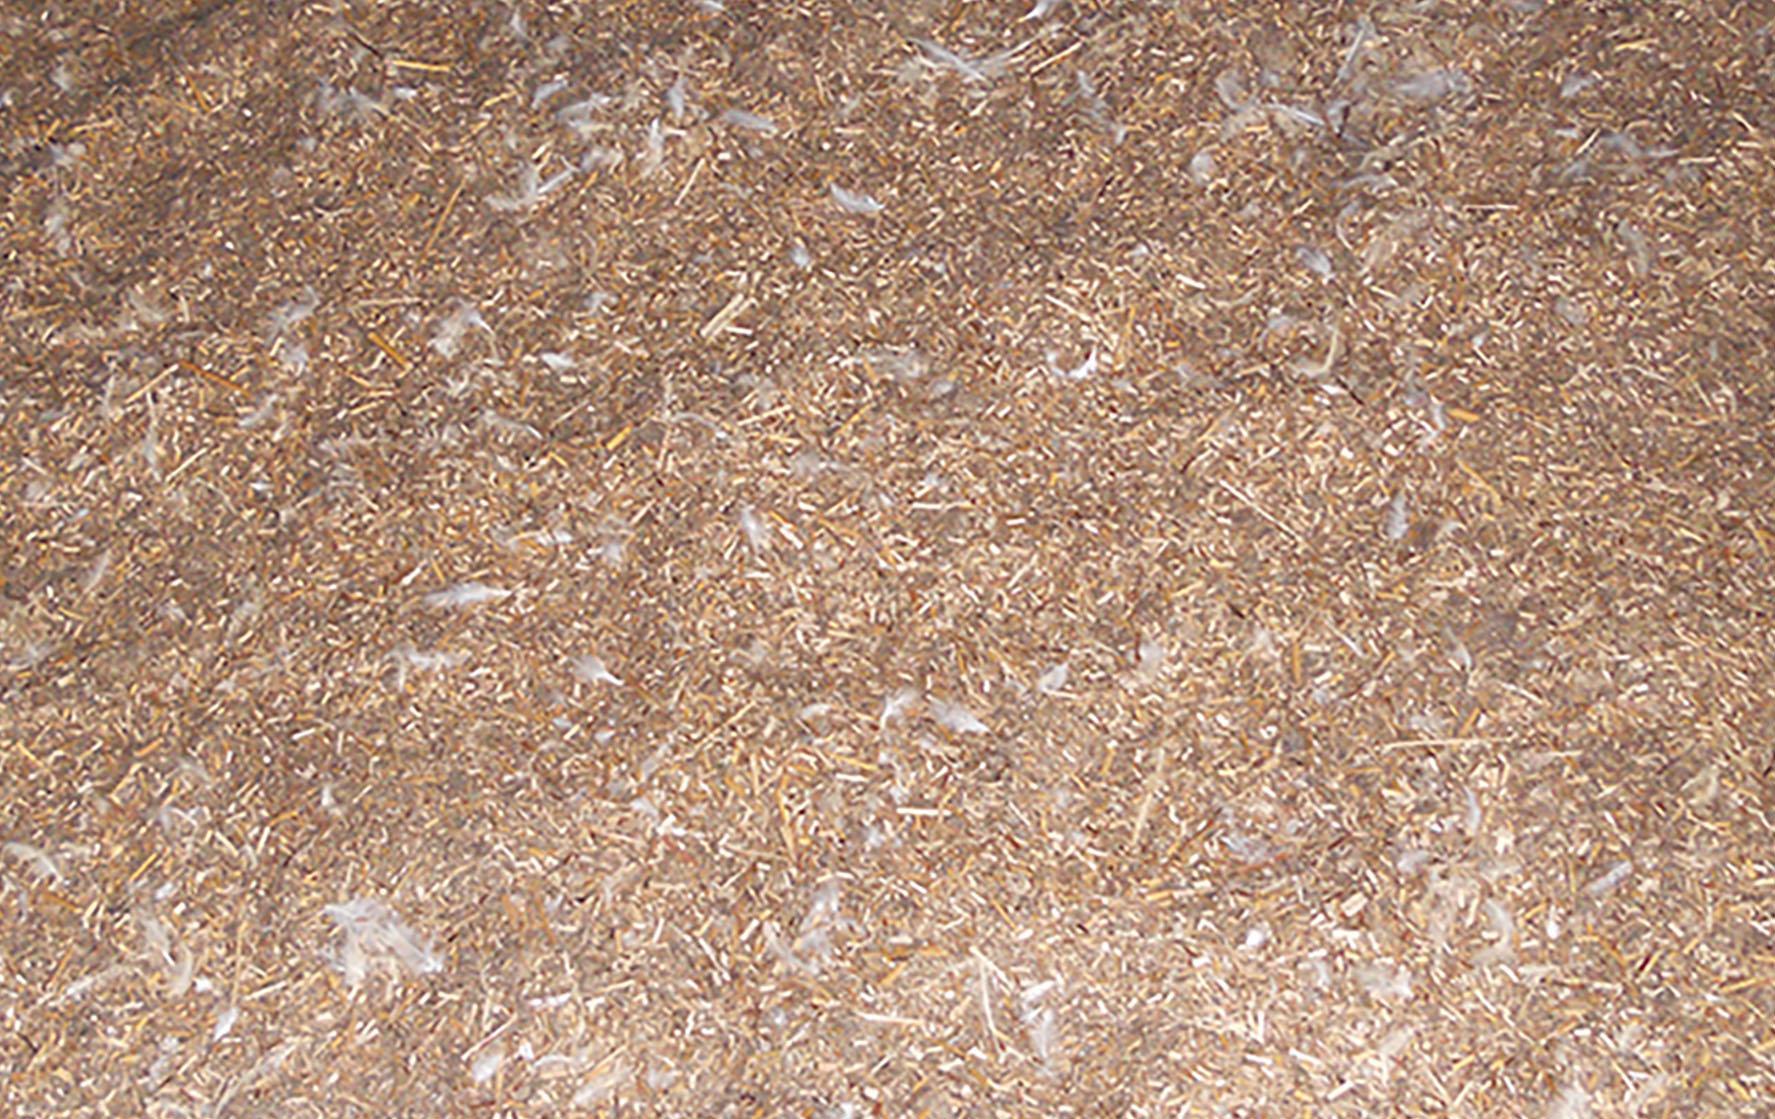 Pictured is miscanthus grass used as bedding in a poultry house.